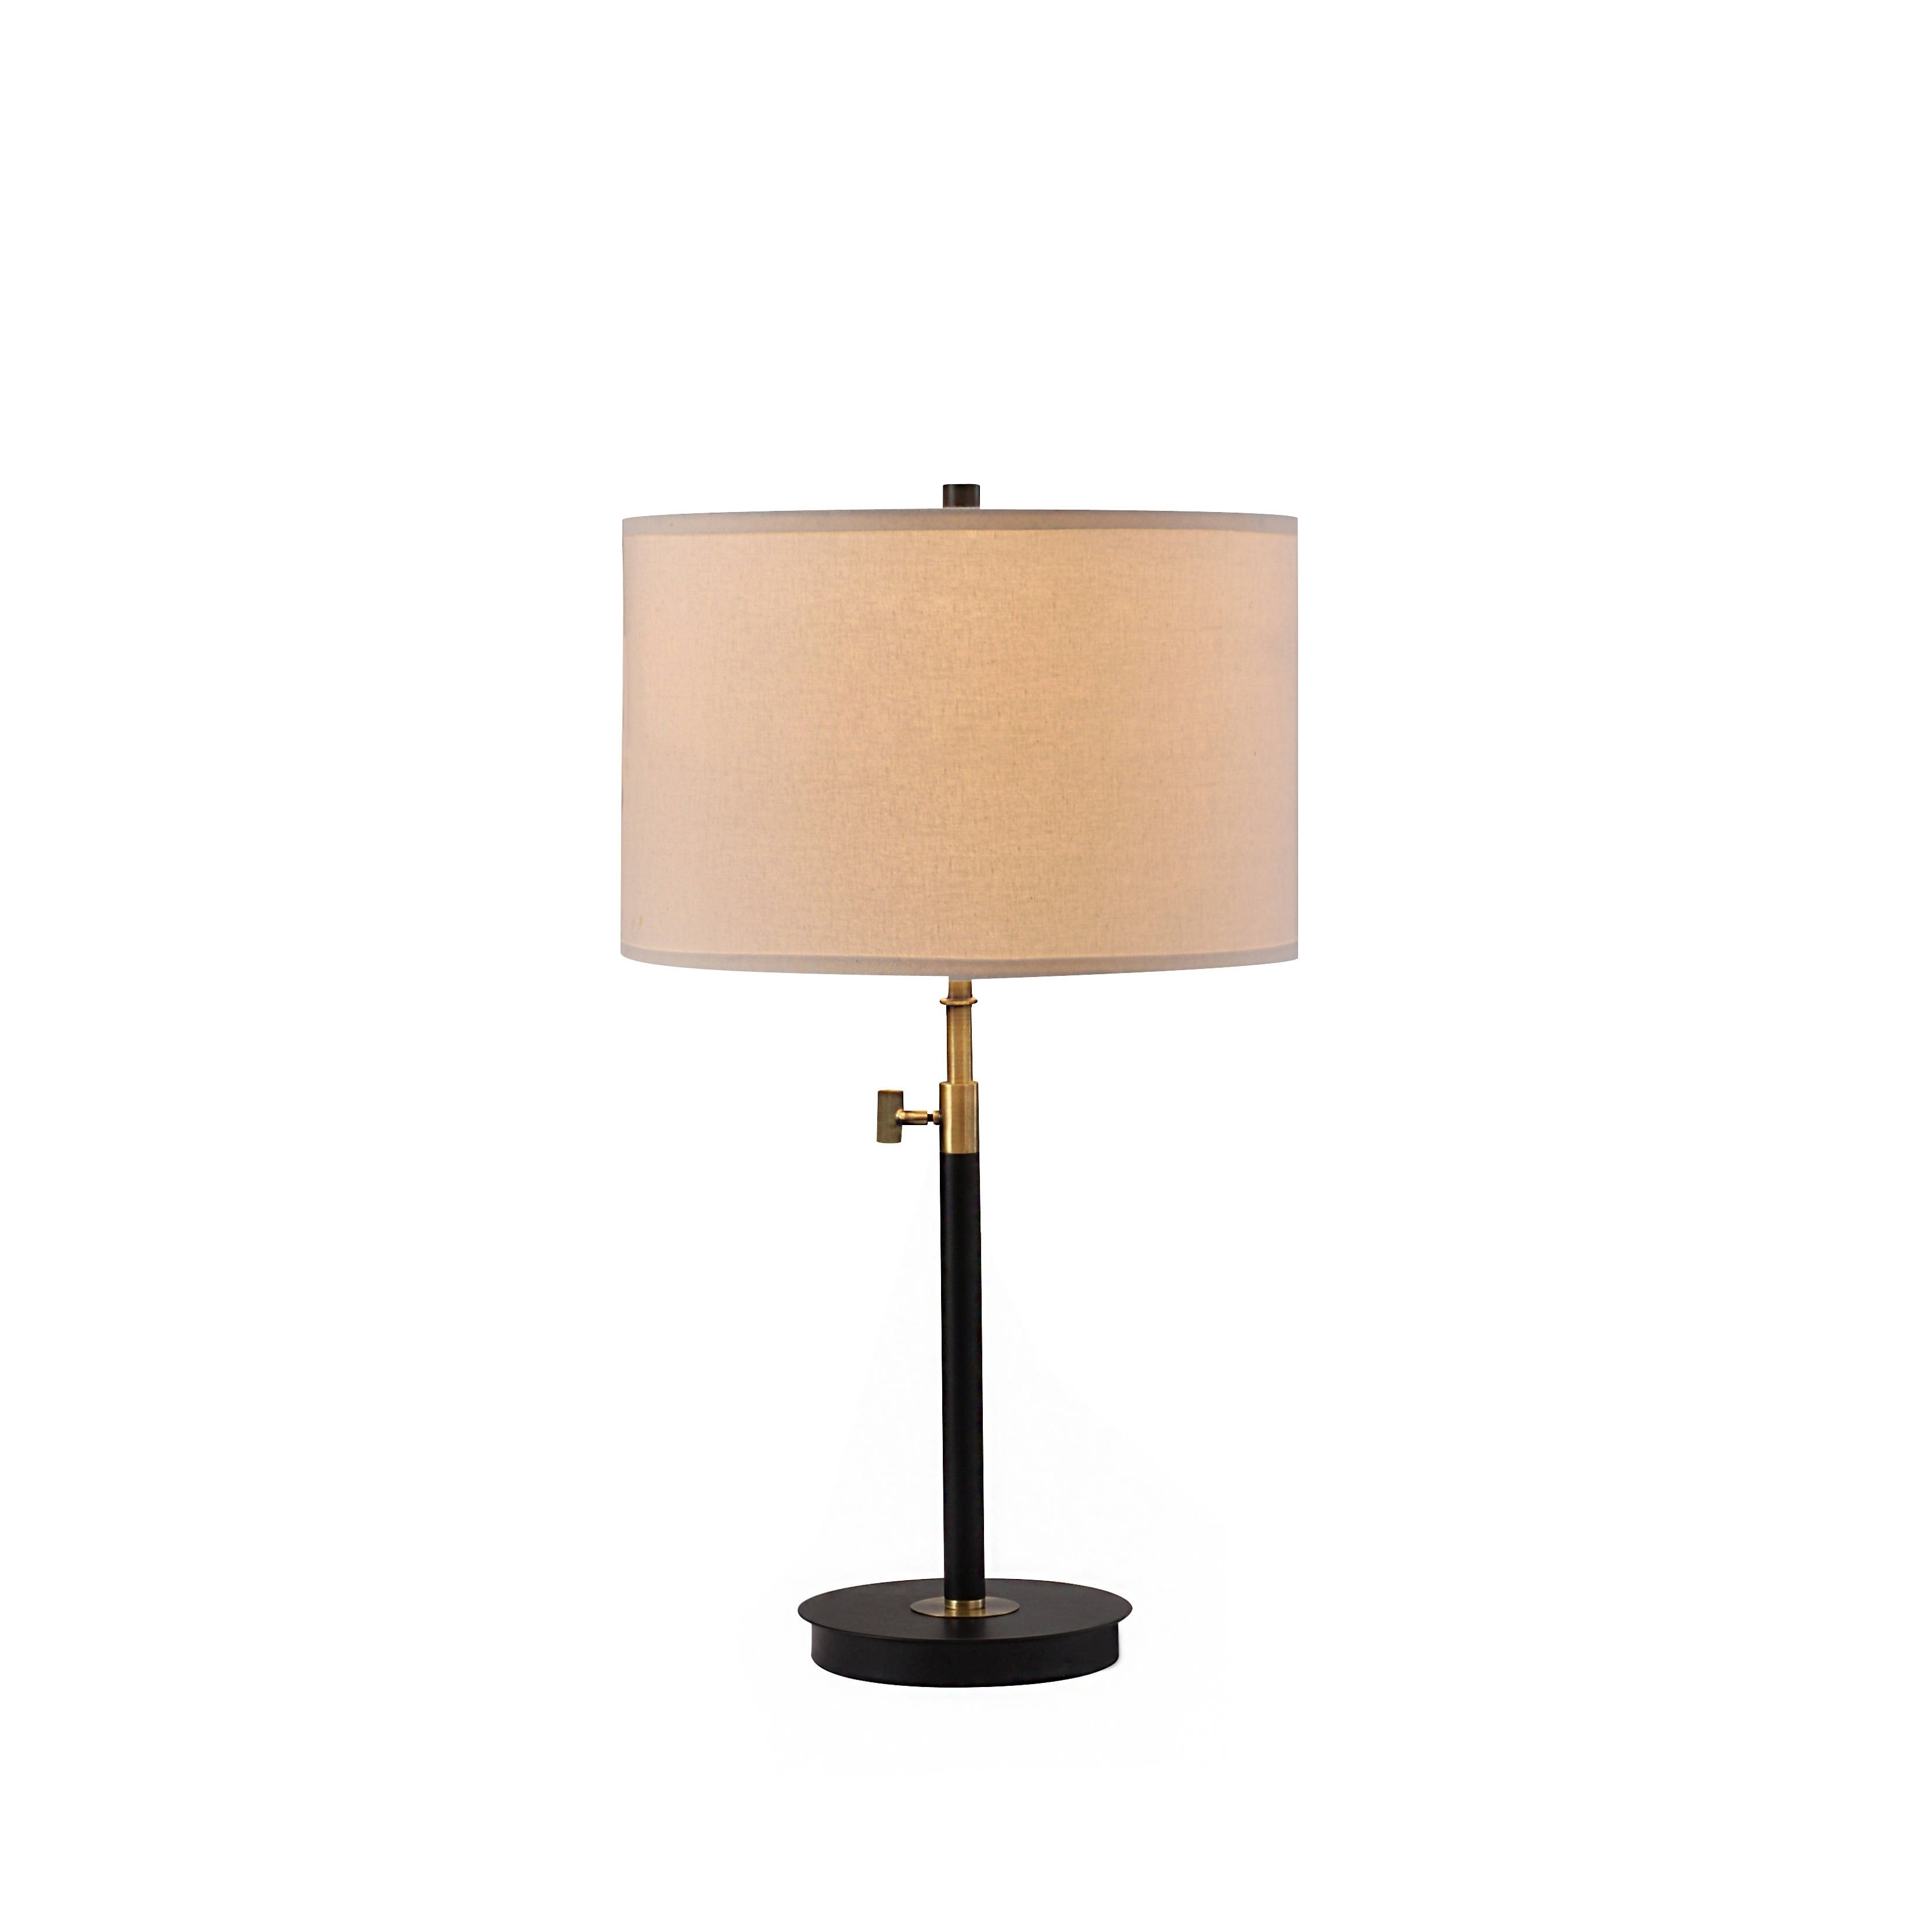 Carbon Loft Poole Antique Brass and Matte Black Metal Table Lamp with Linen Shade